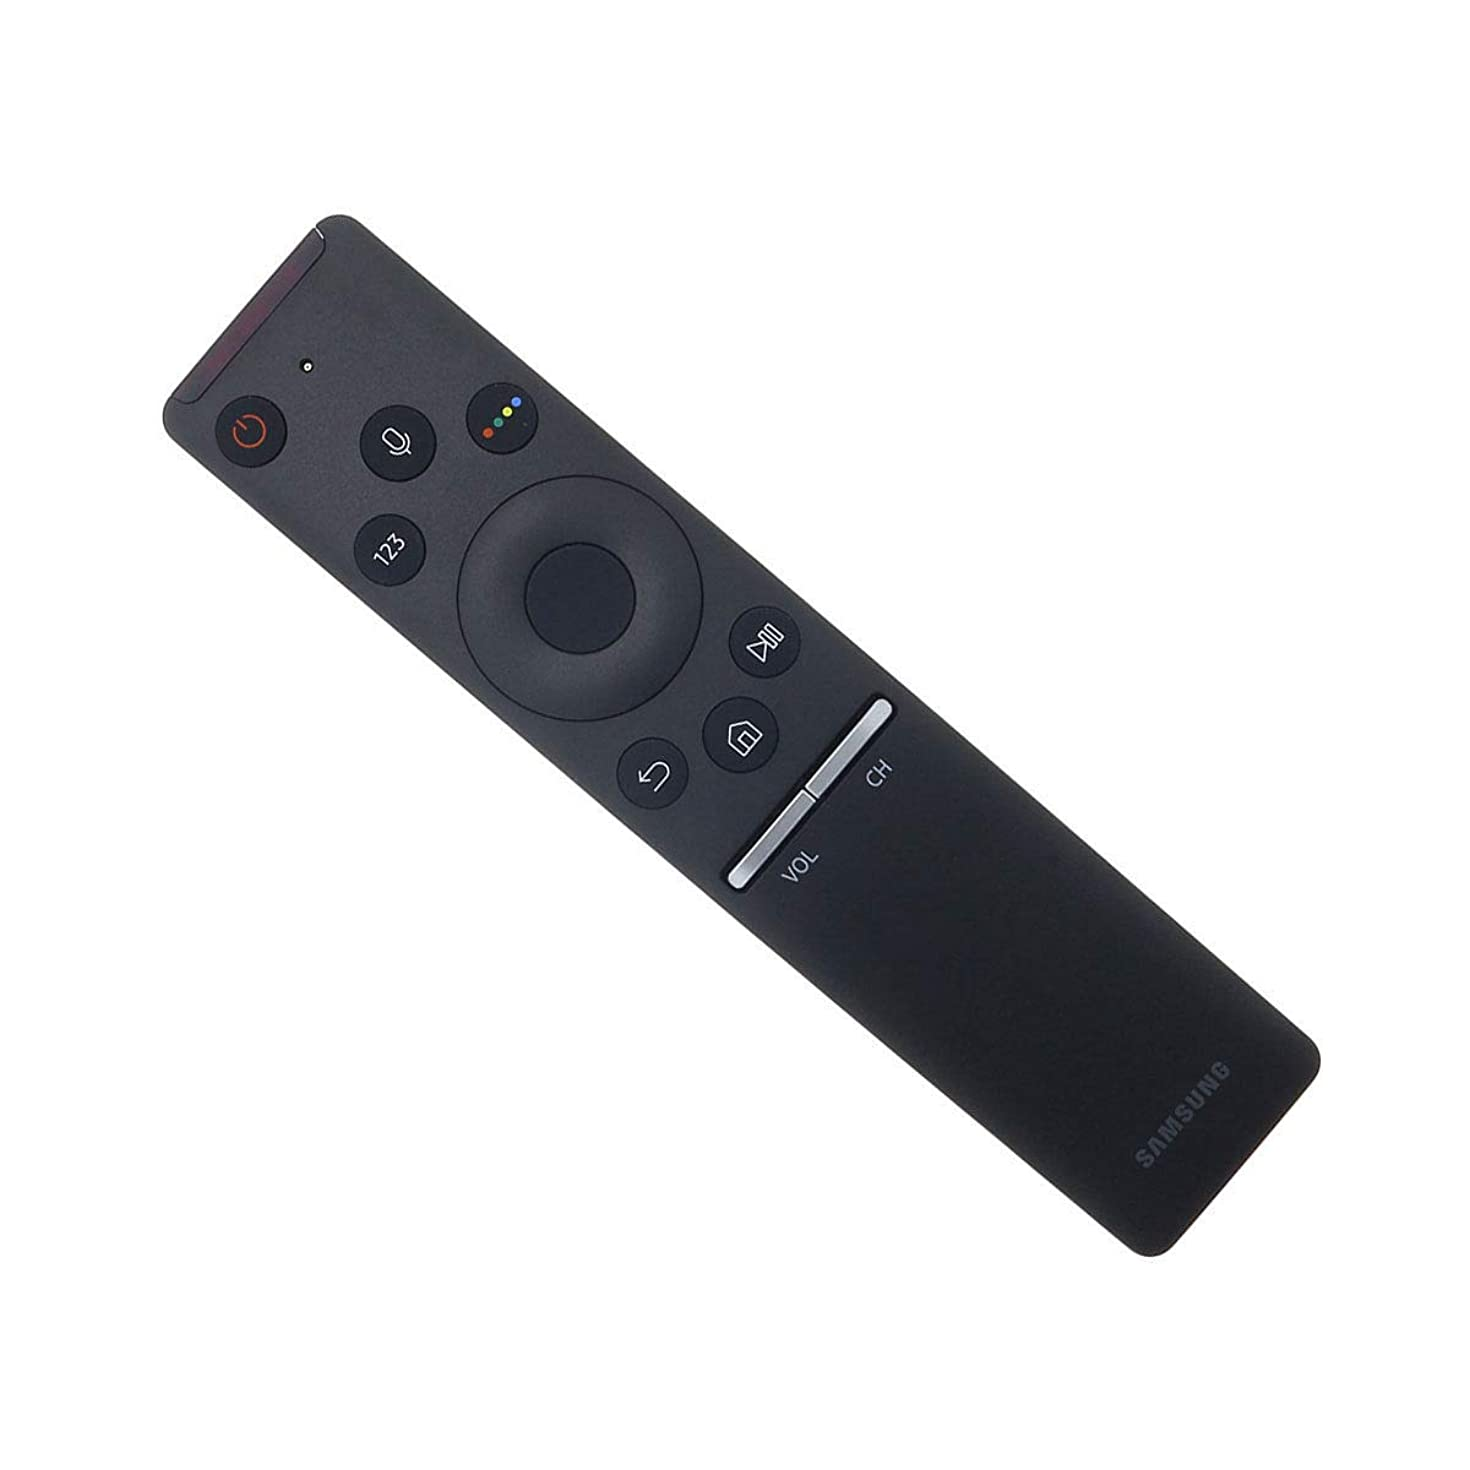 Replacement Remote Control Controller for Samsung QN55Q7F, QN65Q7F, QN75Q7F Flat QLED 4K UHD 7 Series Smart TV